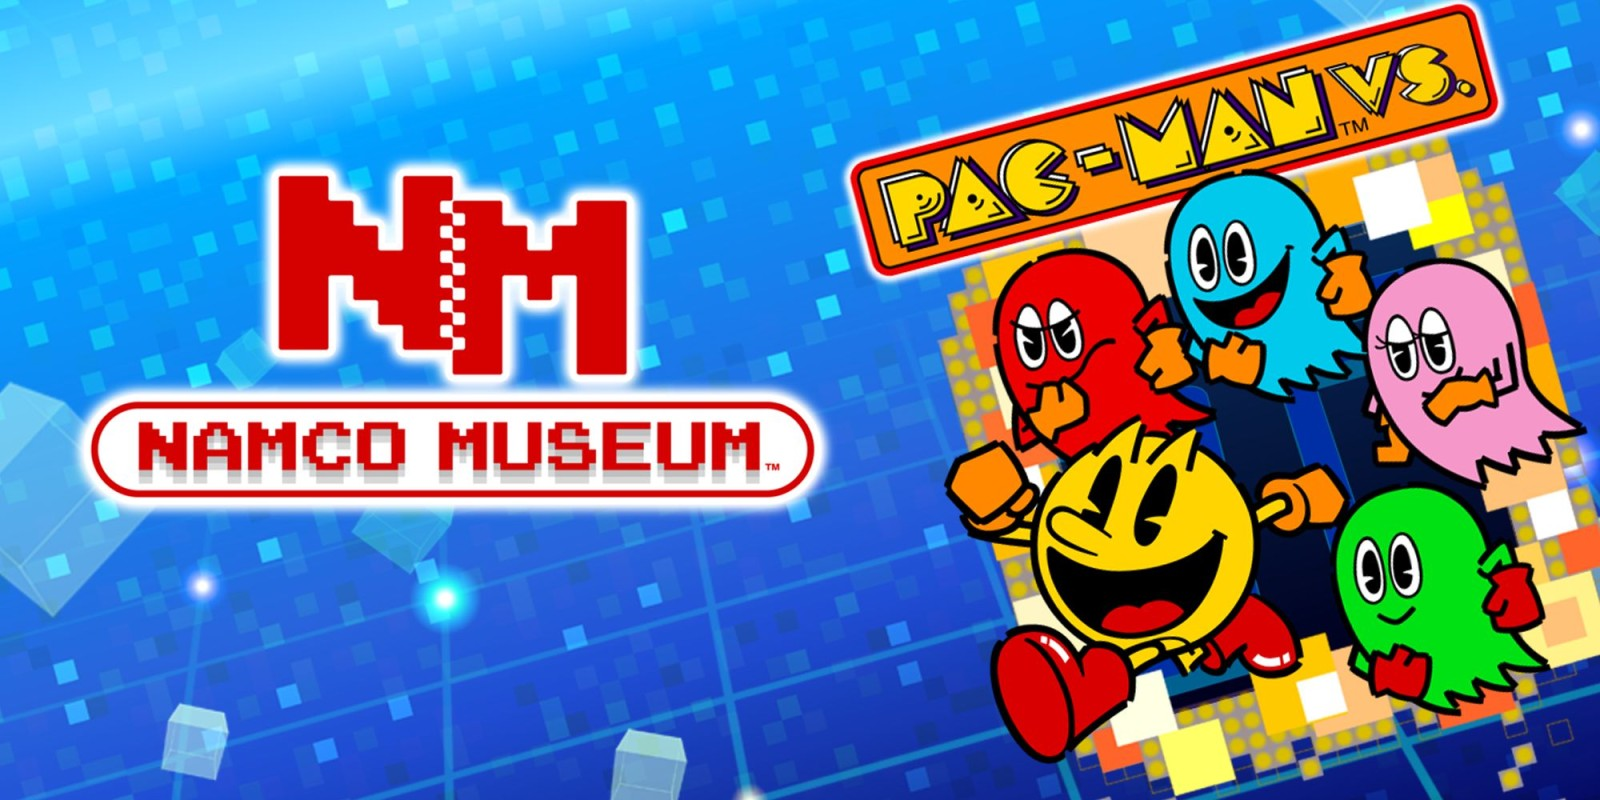 PAC-MAN VS. Version multijoueur gratuite